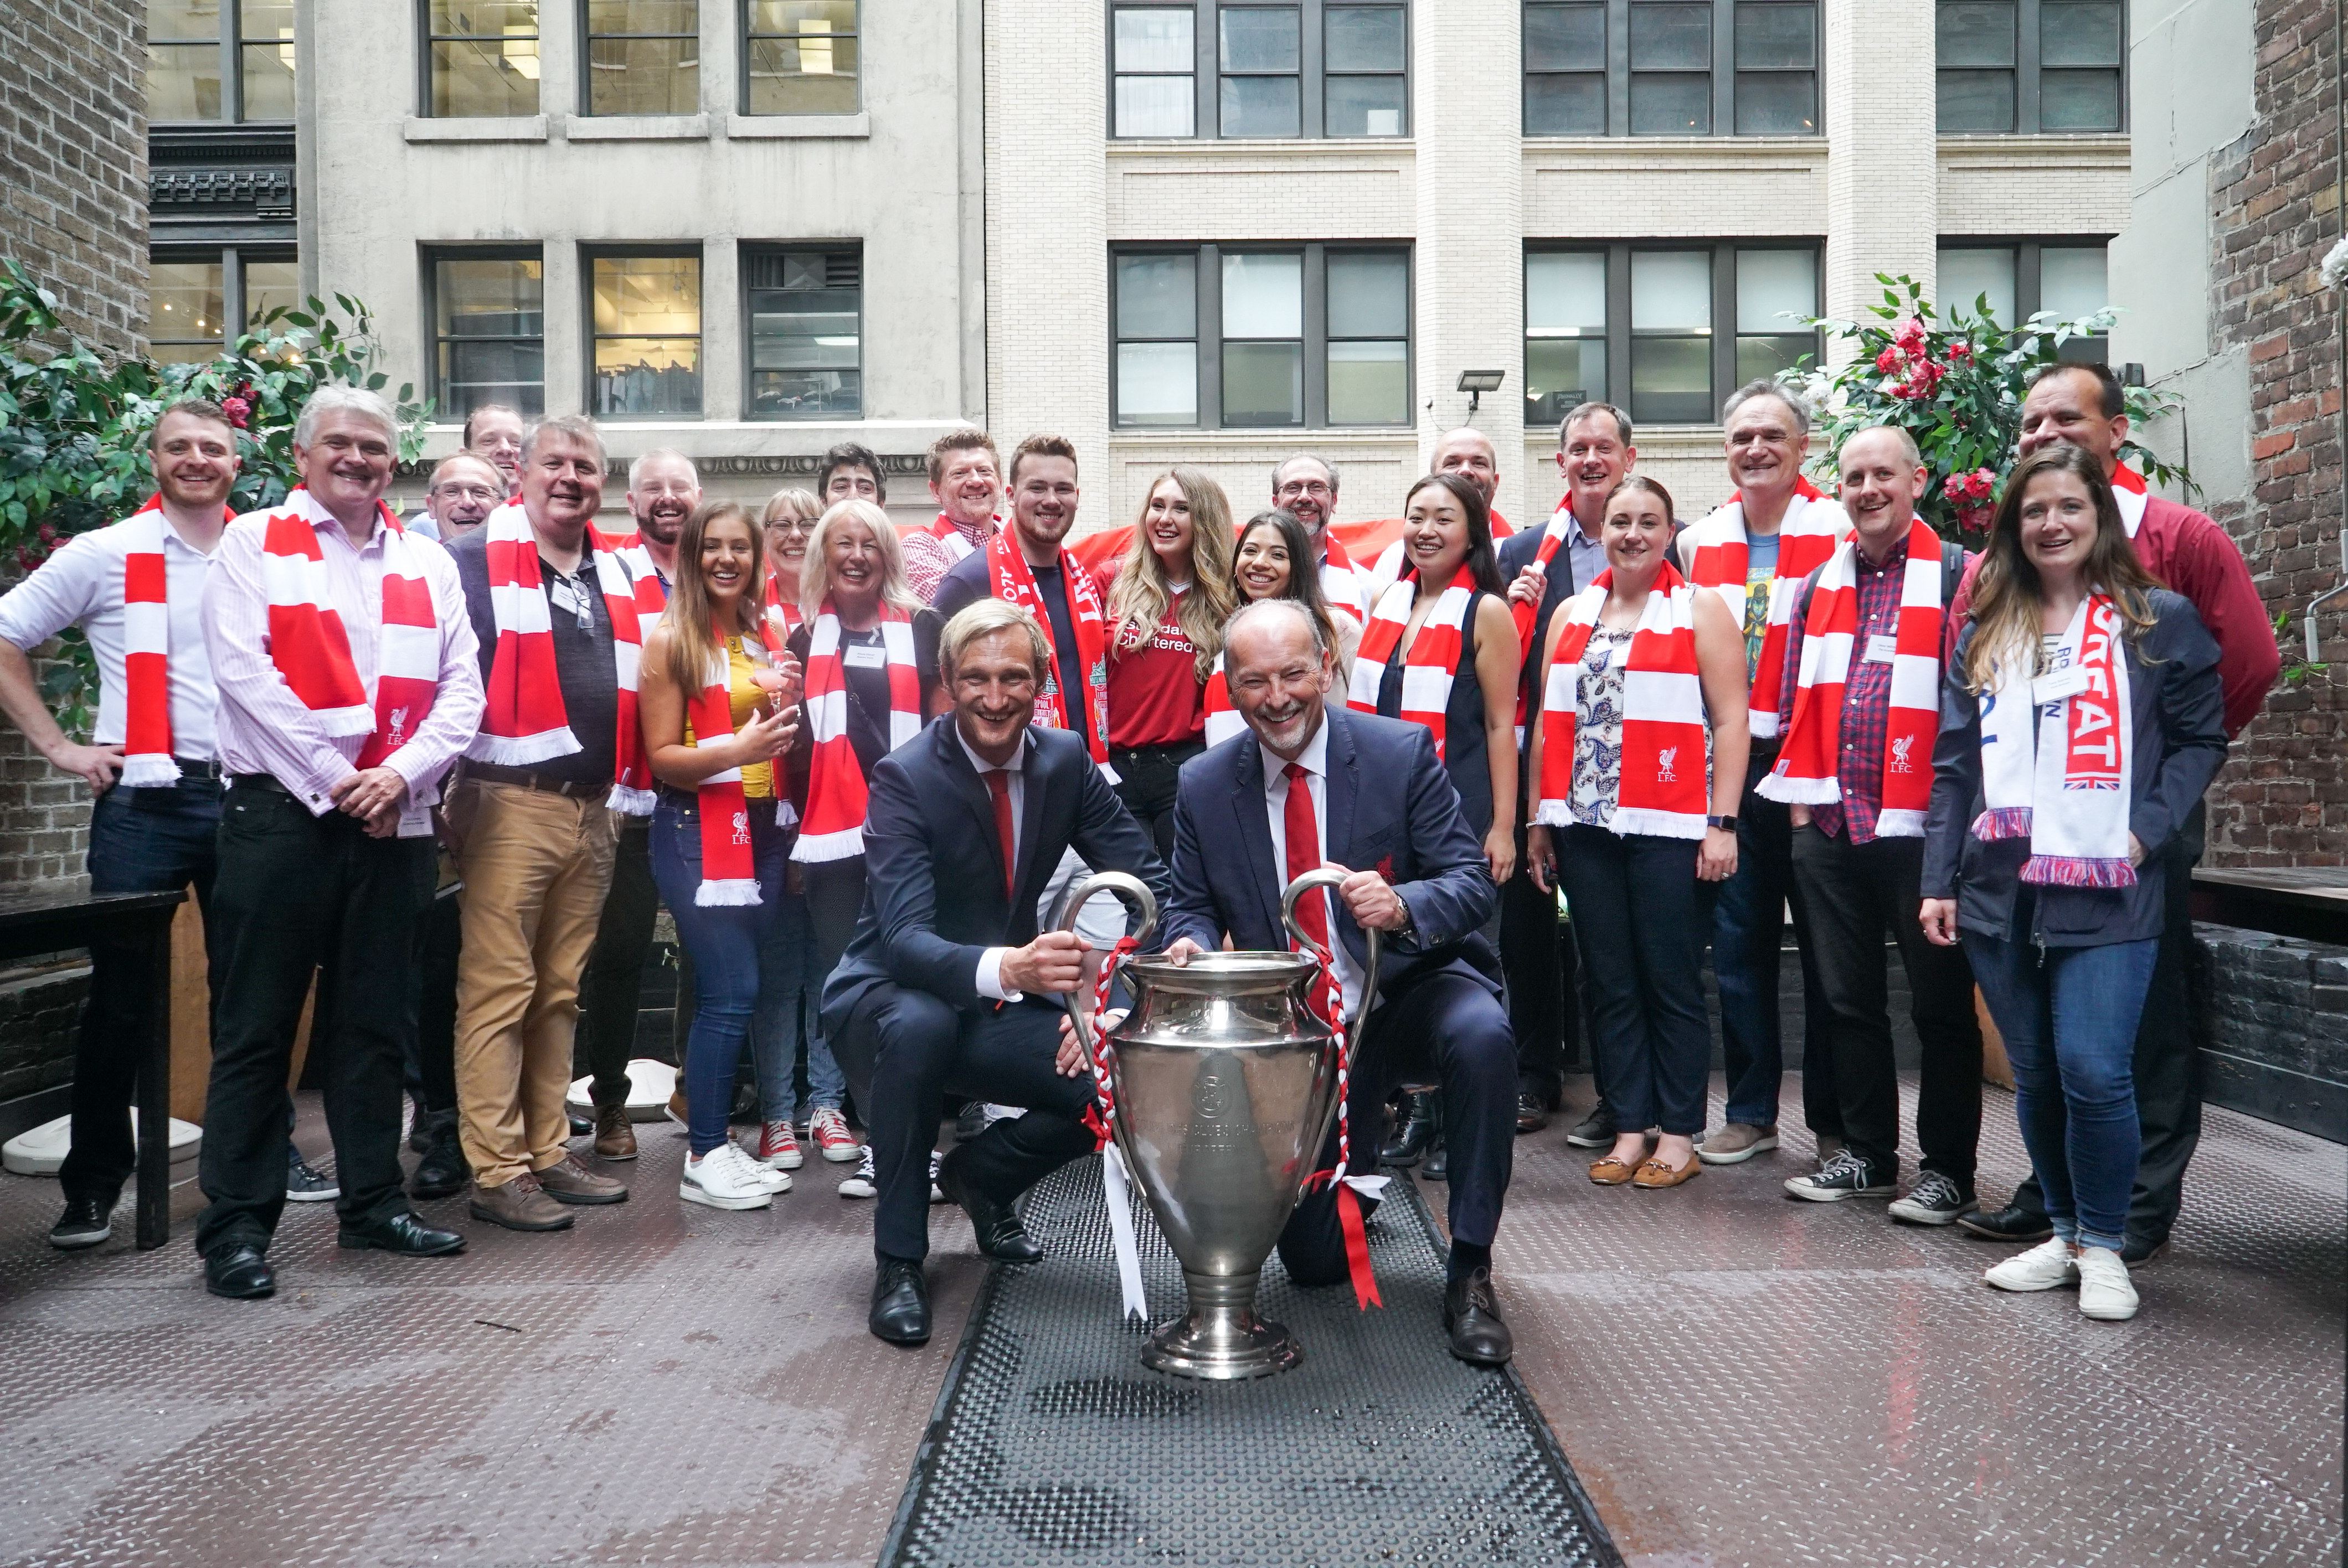 Liverpool in New York